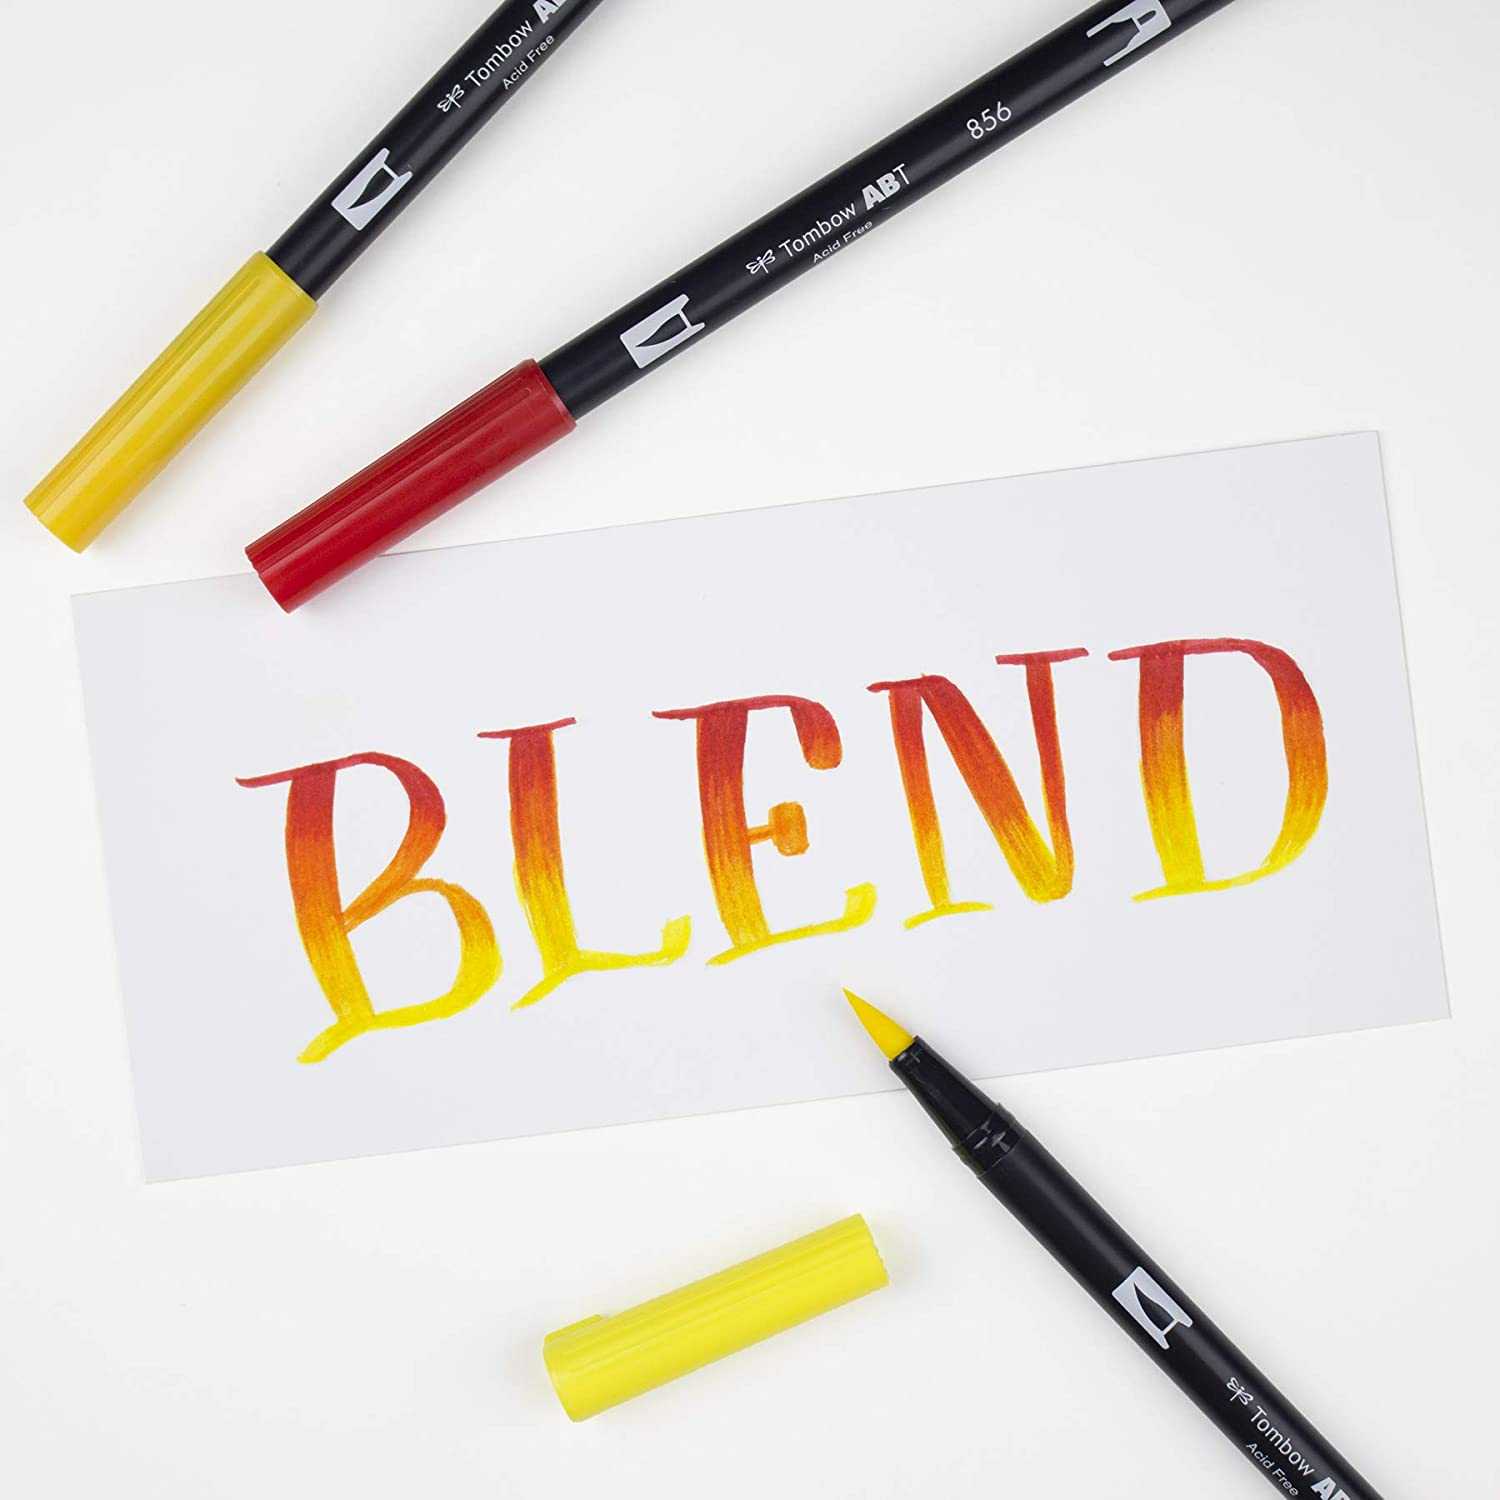 Amazon Tombow Blending Kit Includes Blending Palette Colorless Blender Spray Mister and Blending Guide fice Products